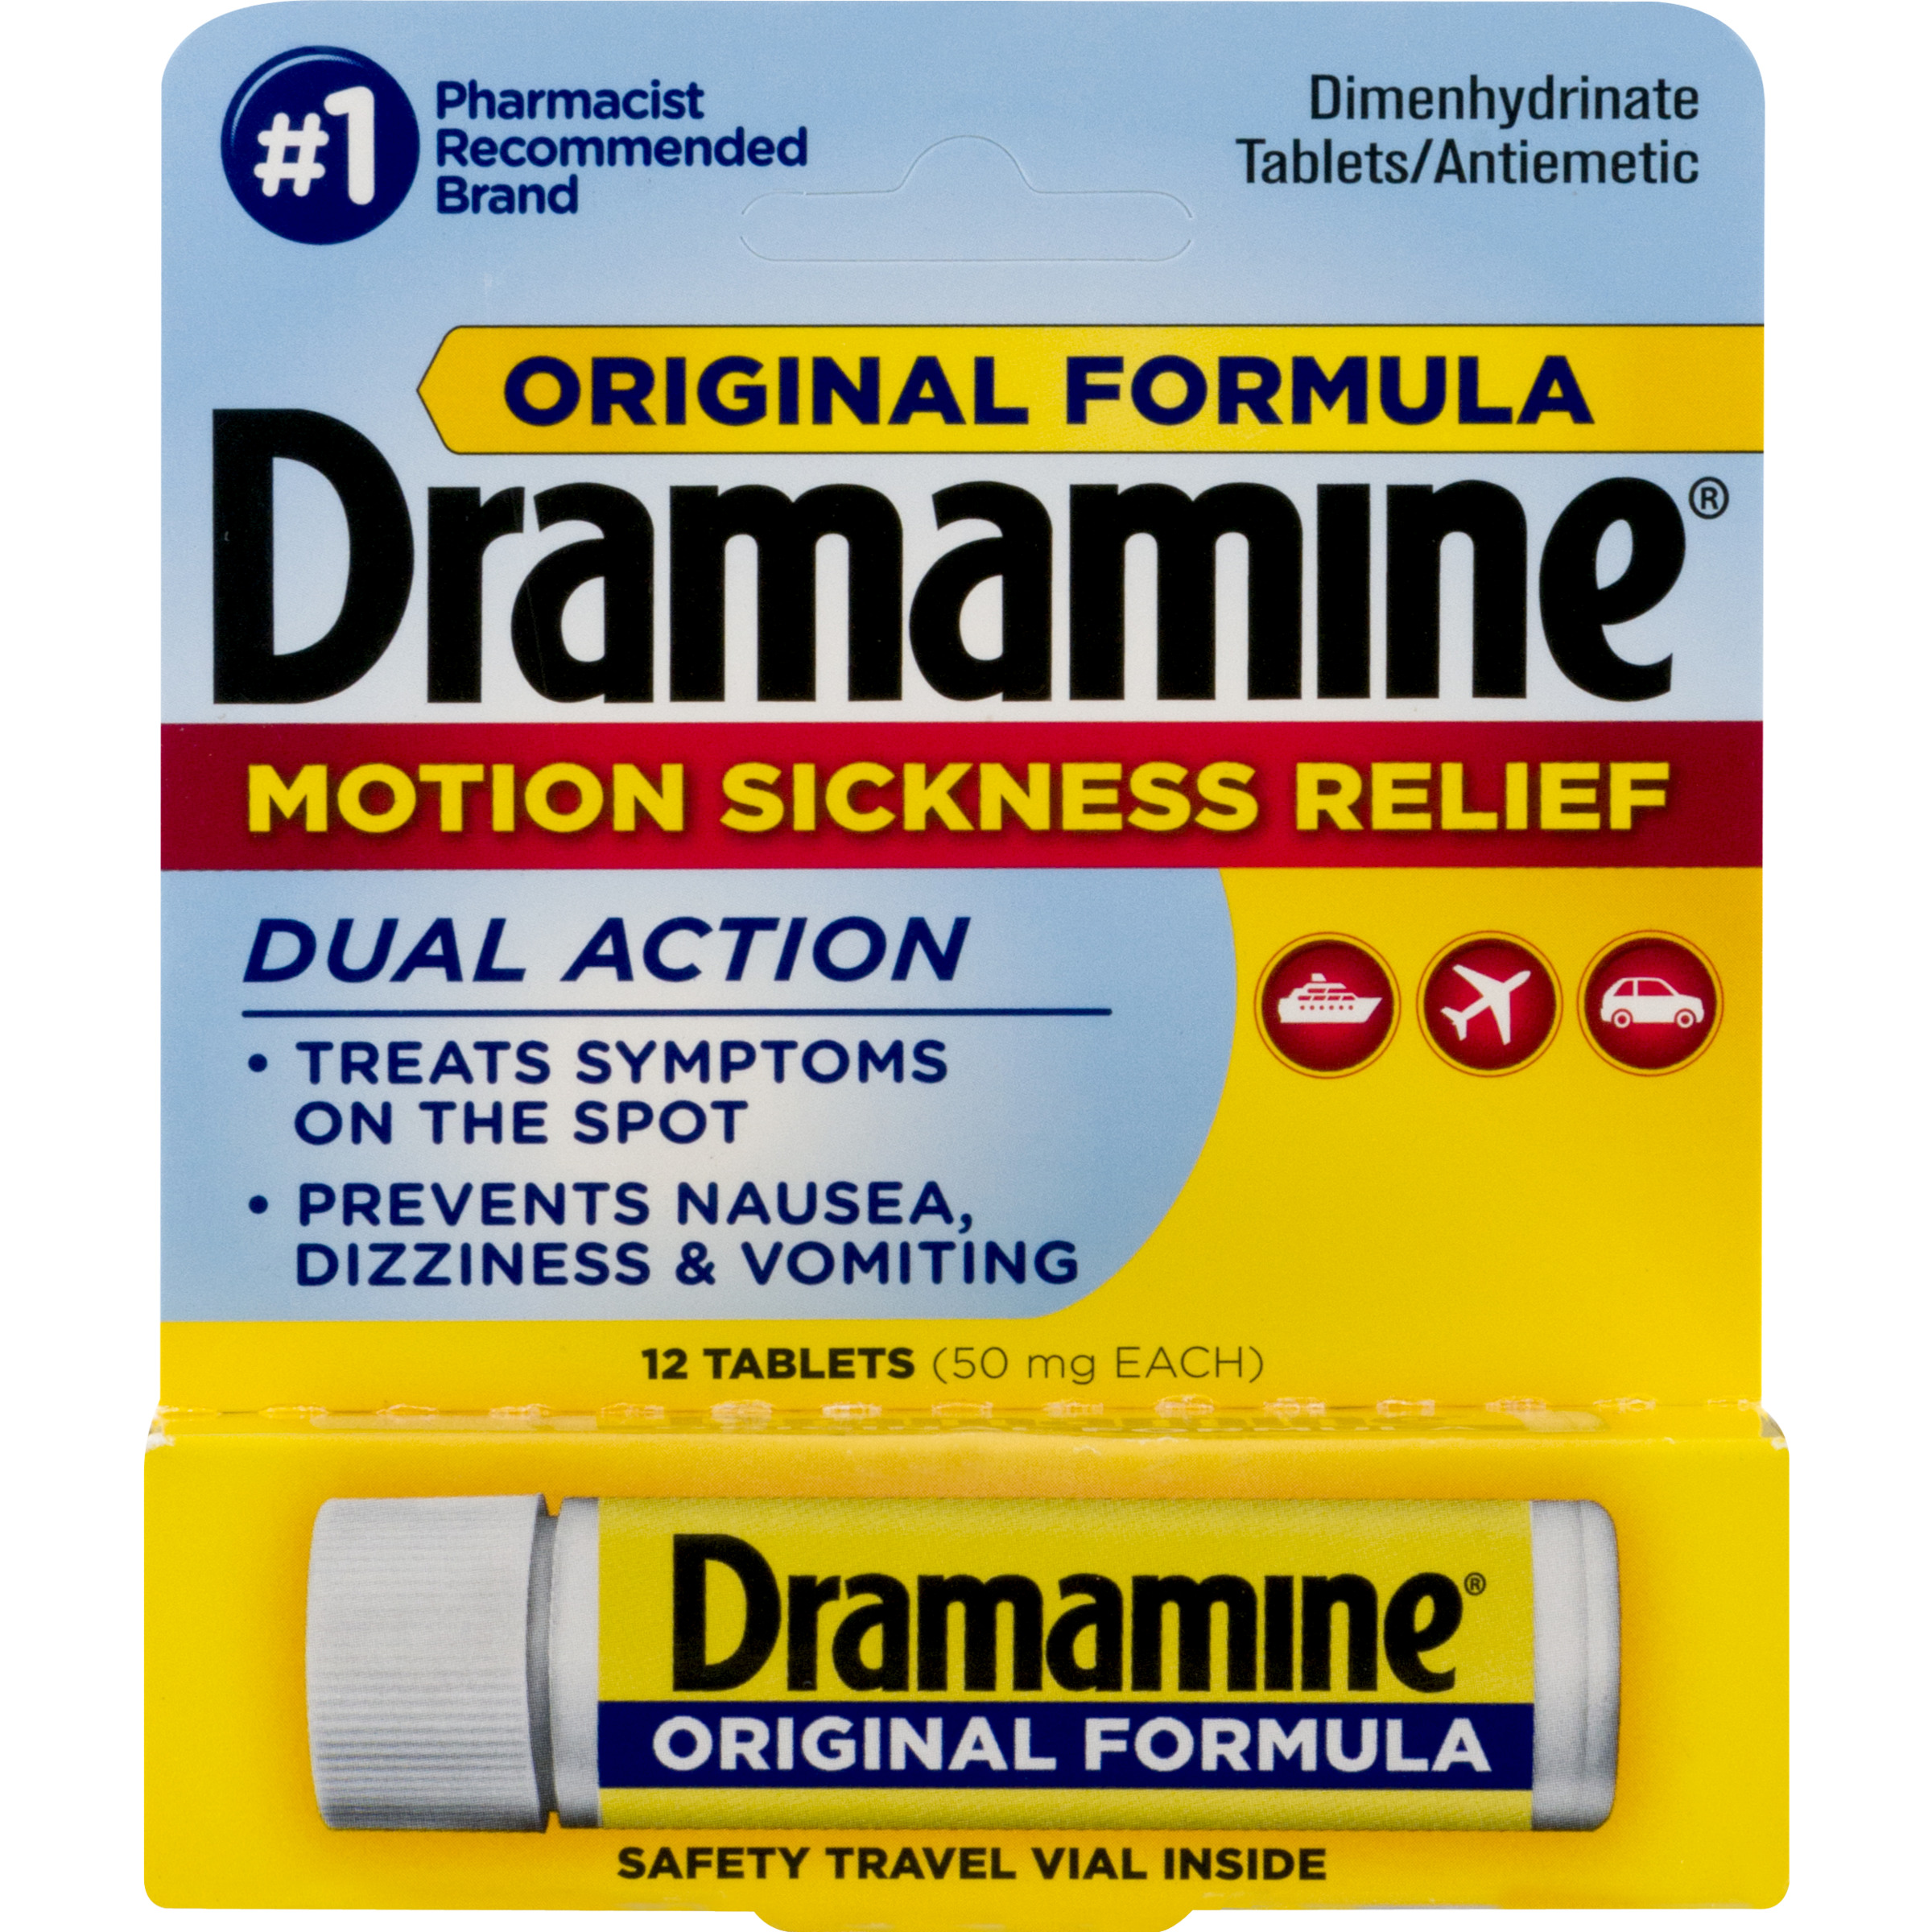 Dramamine Original Formula Dimenhydrinate Tablets Dual Action - 12 CT12.0 CT